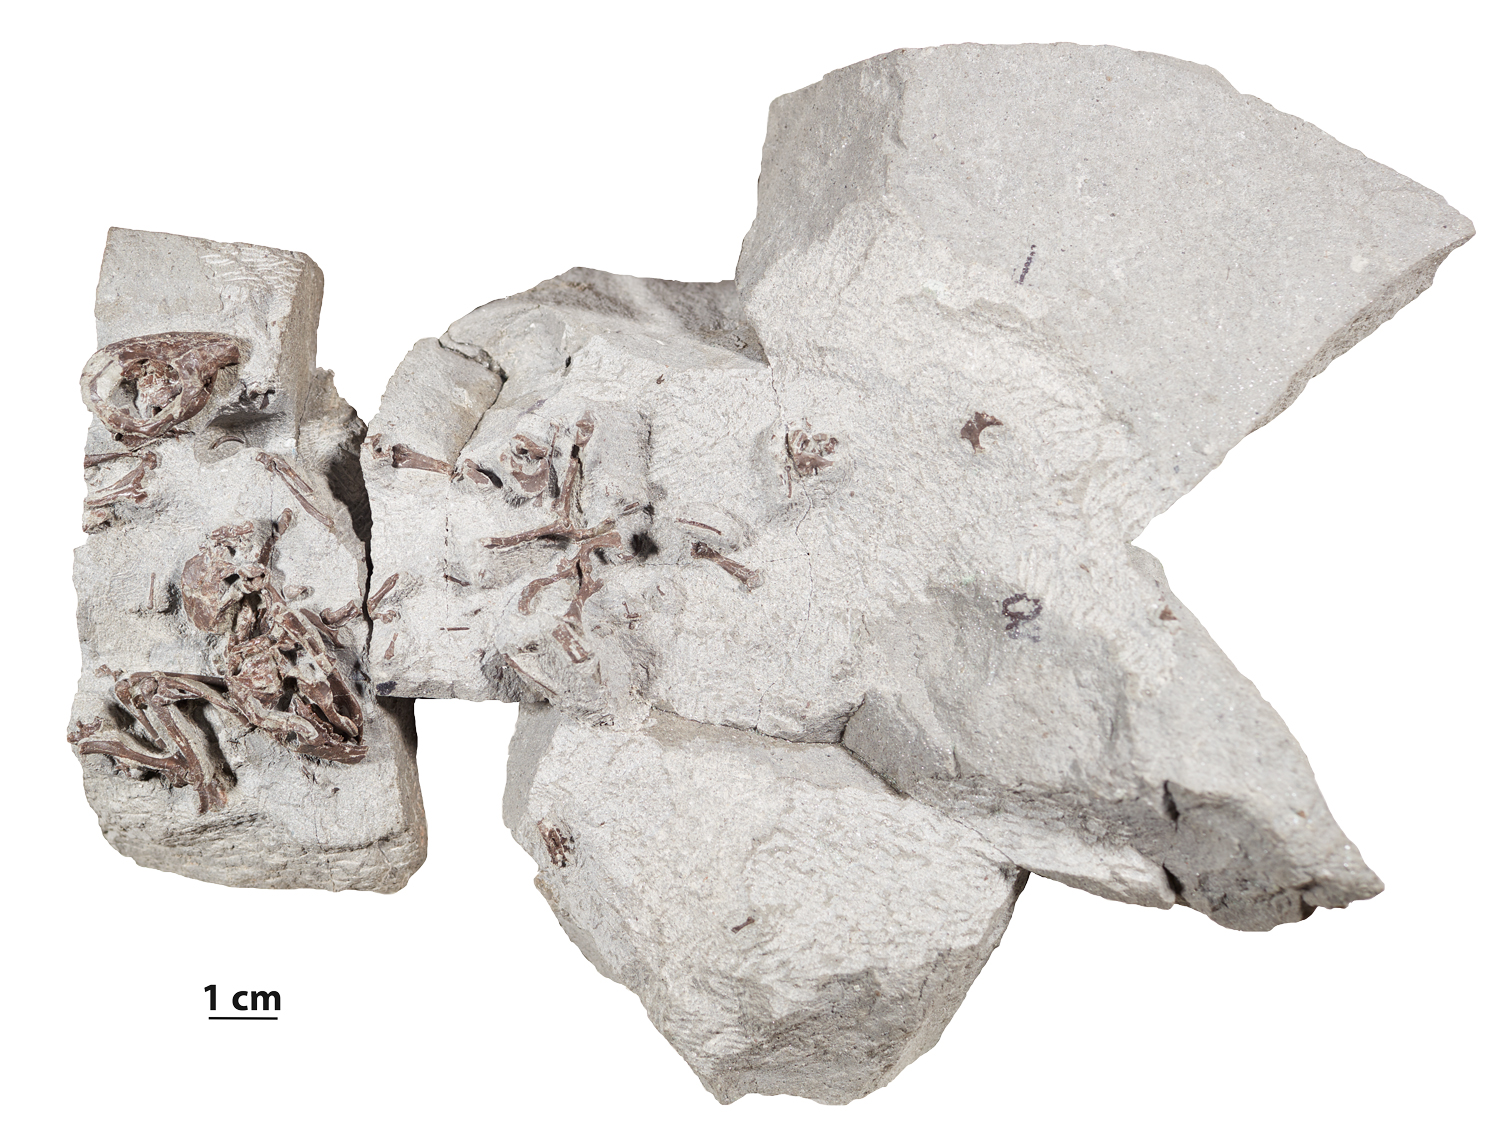 6e6aac276952f195477d3361bc24a437-1 Fossils reveal cozy, social life of this early mammal